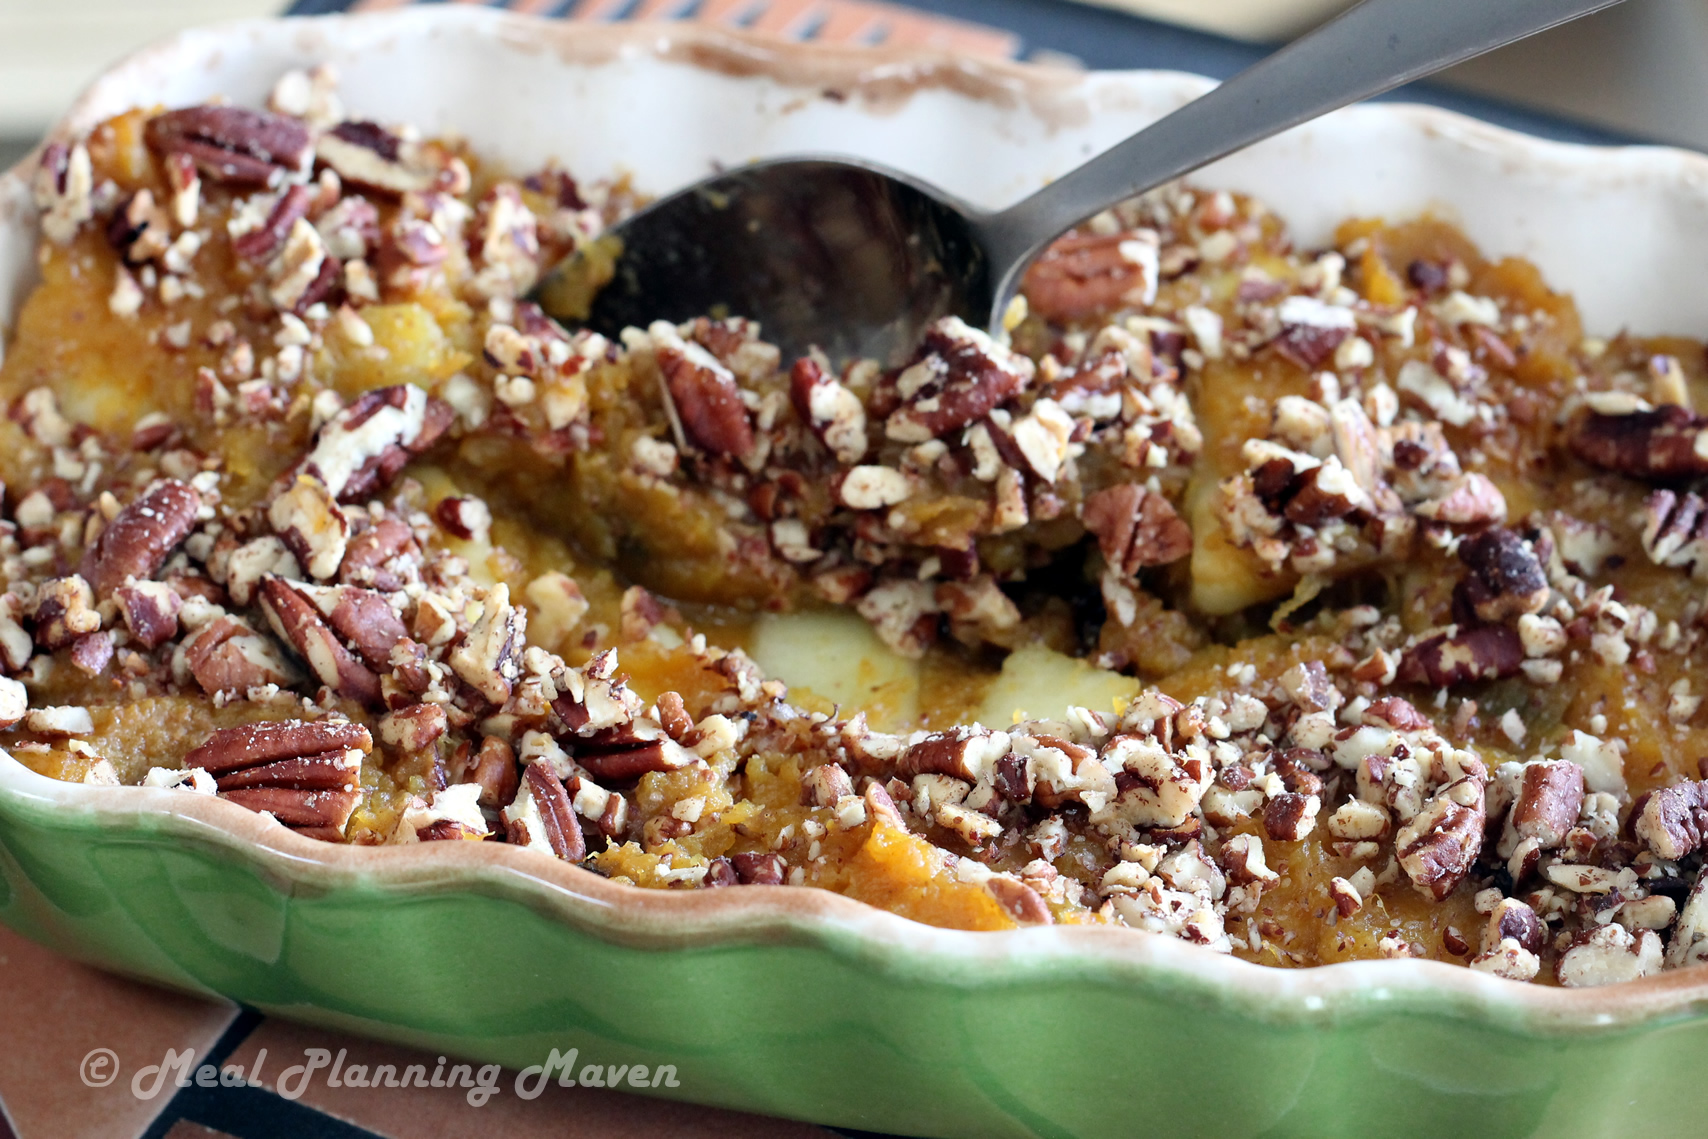 Crunchy Butternut Squash 'n Apple Bake